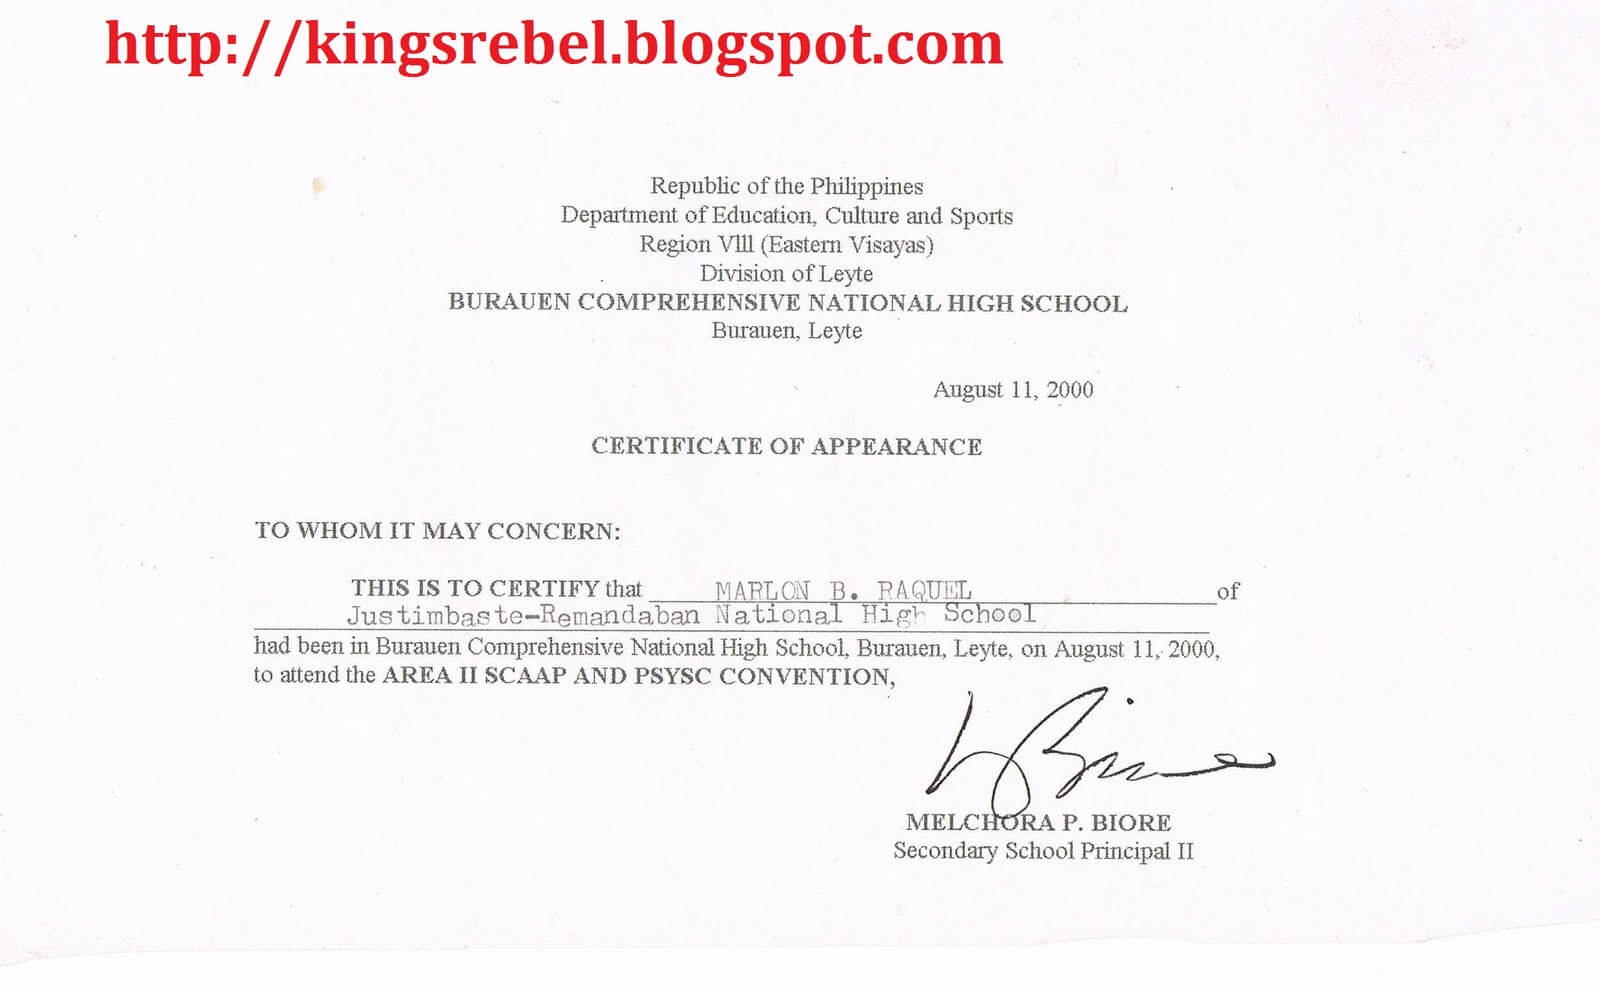 Certificate Of Appearance Template ] - Automated Printing Of With Certificate Of Appearance Template